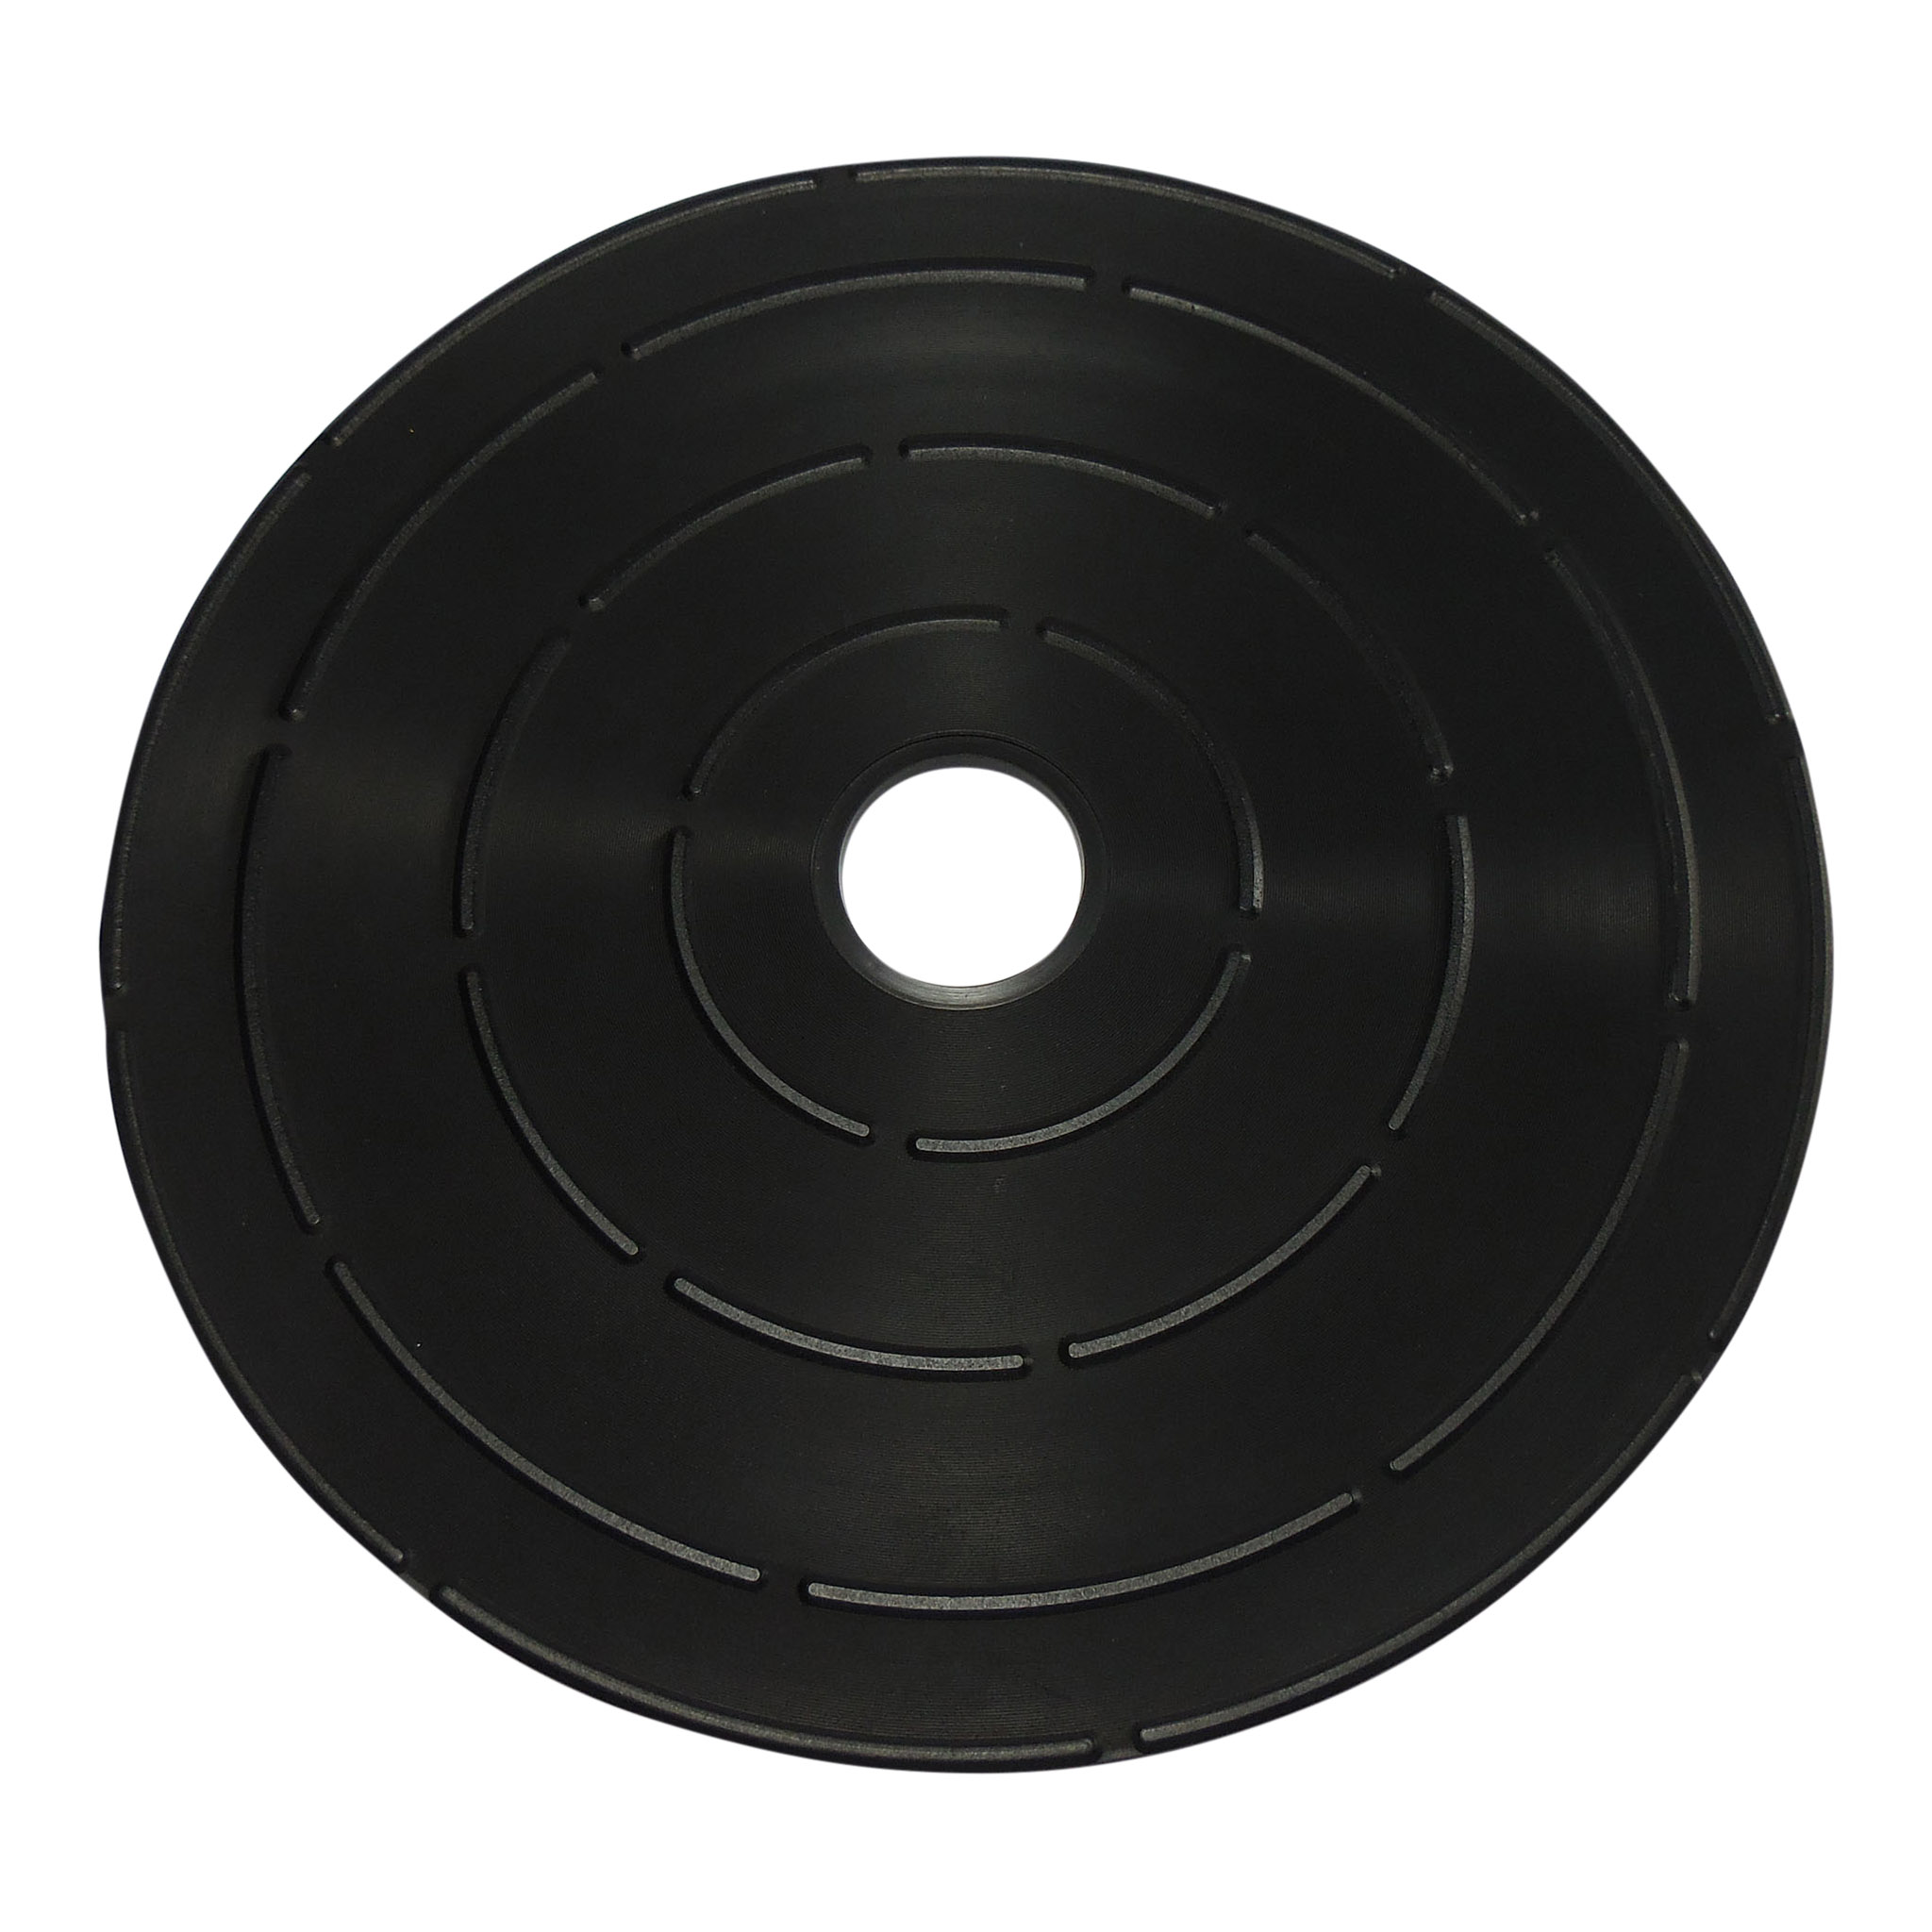 Thorens Stock Rubber Mat Td 150 Td 125 Td 124 Turntable